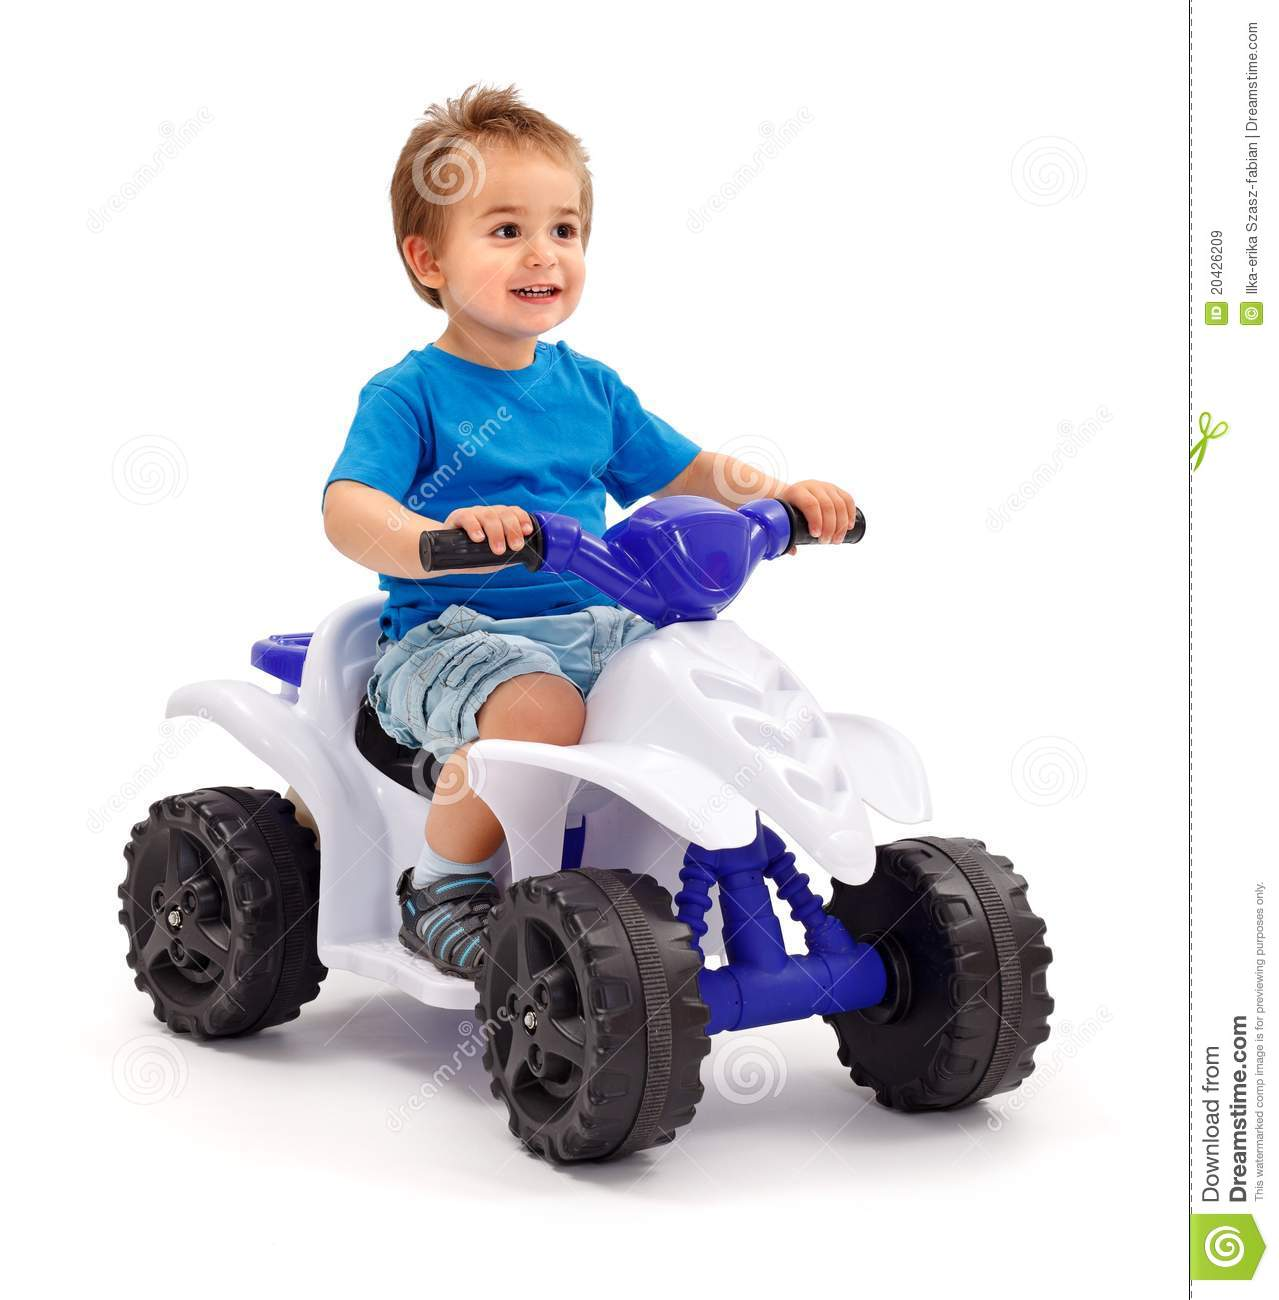 Little Boy With Toy Car : Little boy on toy car royalty free stock images image